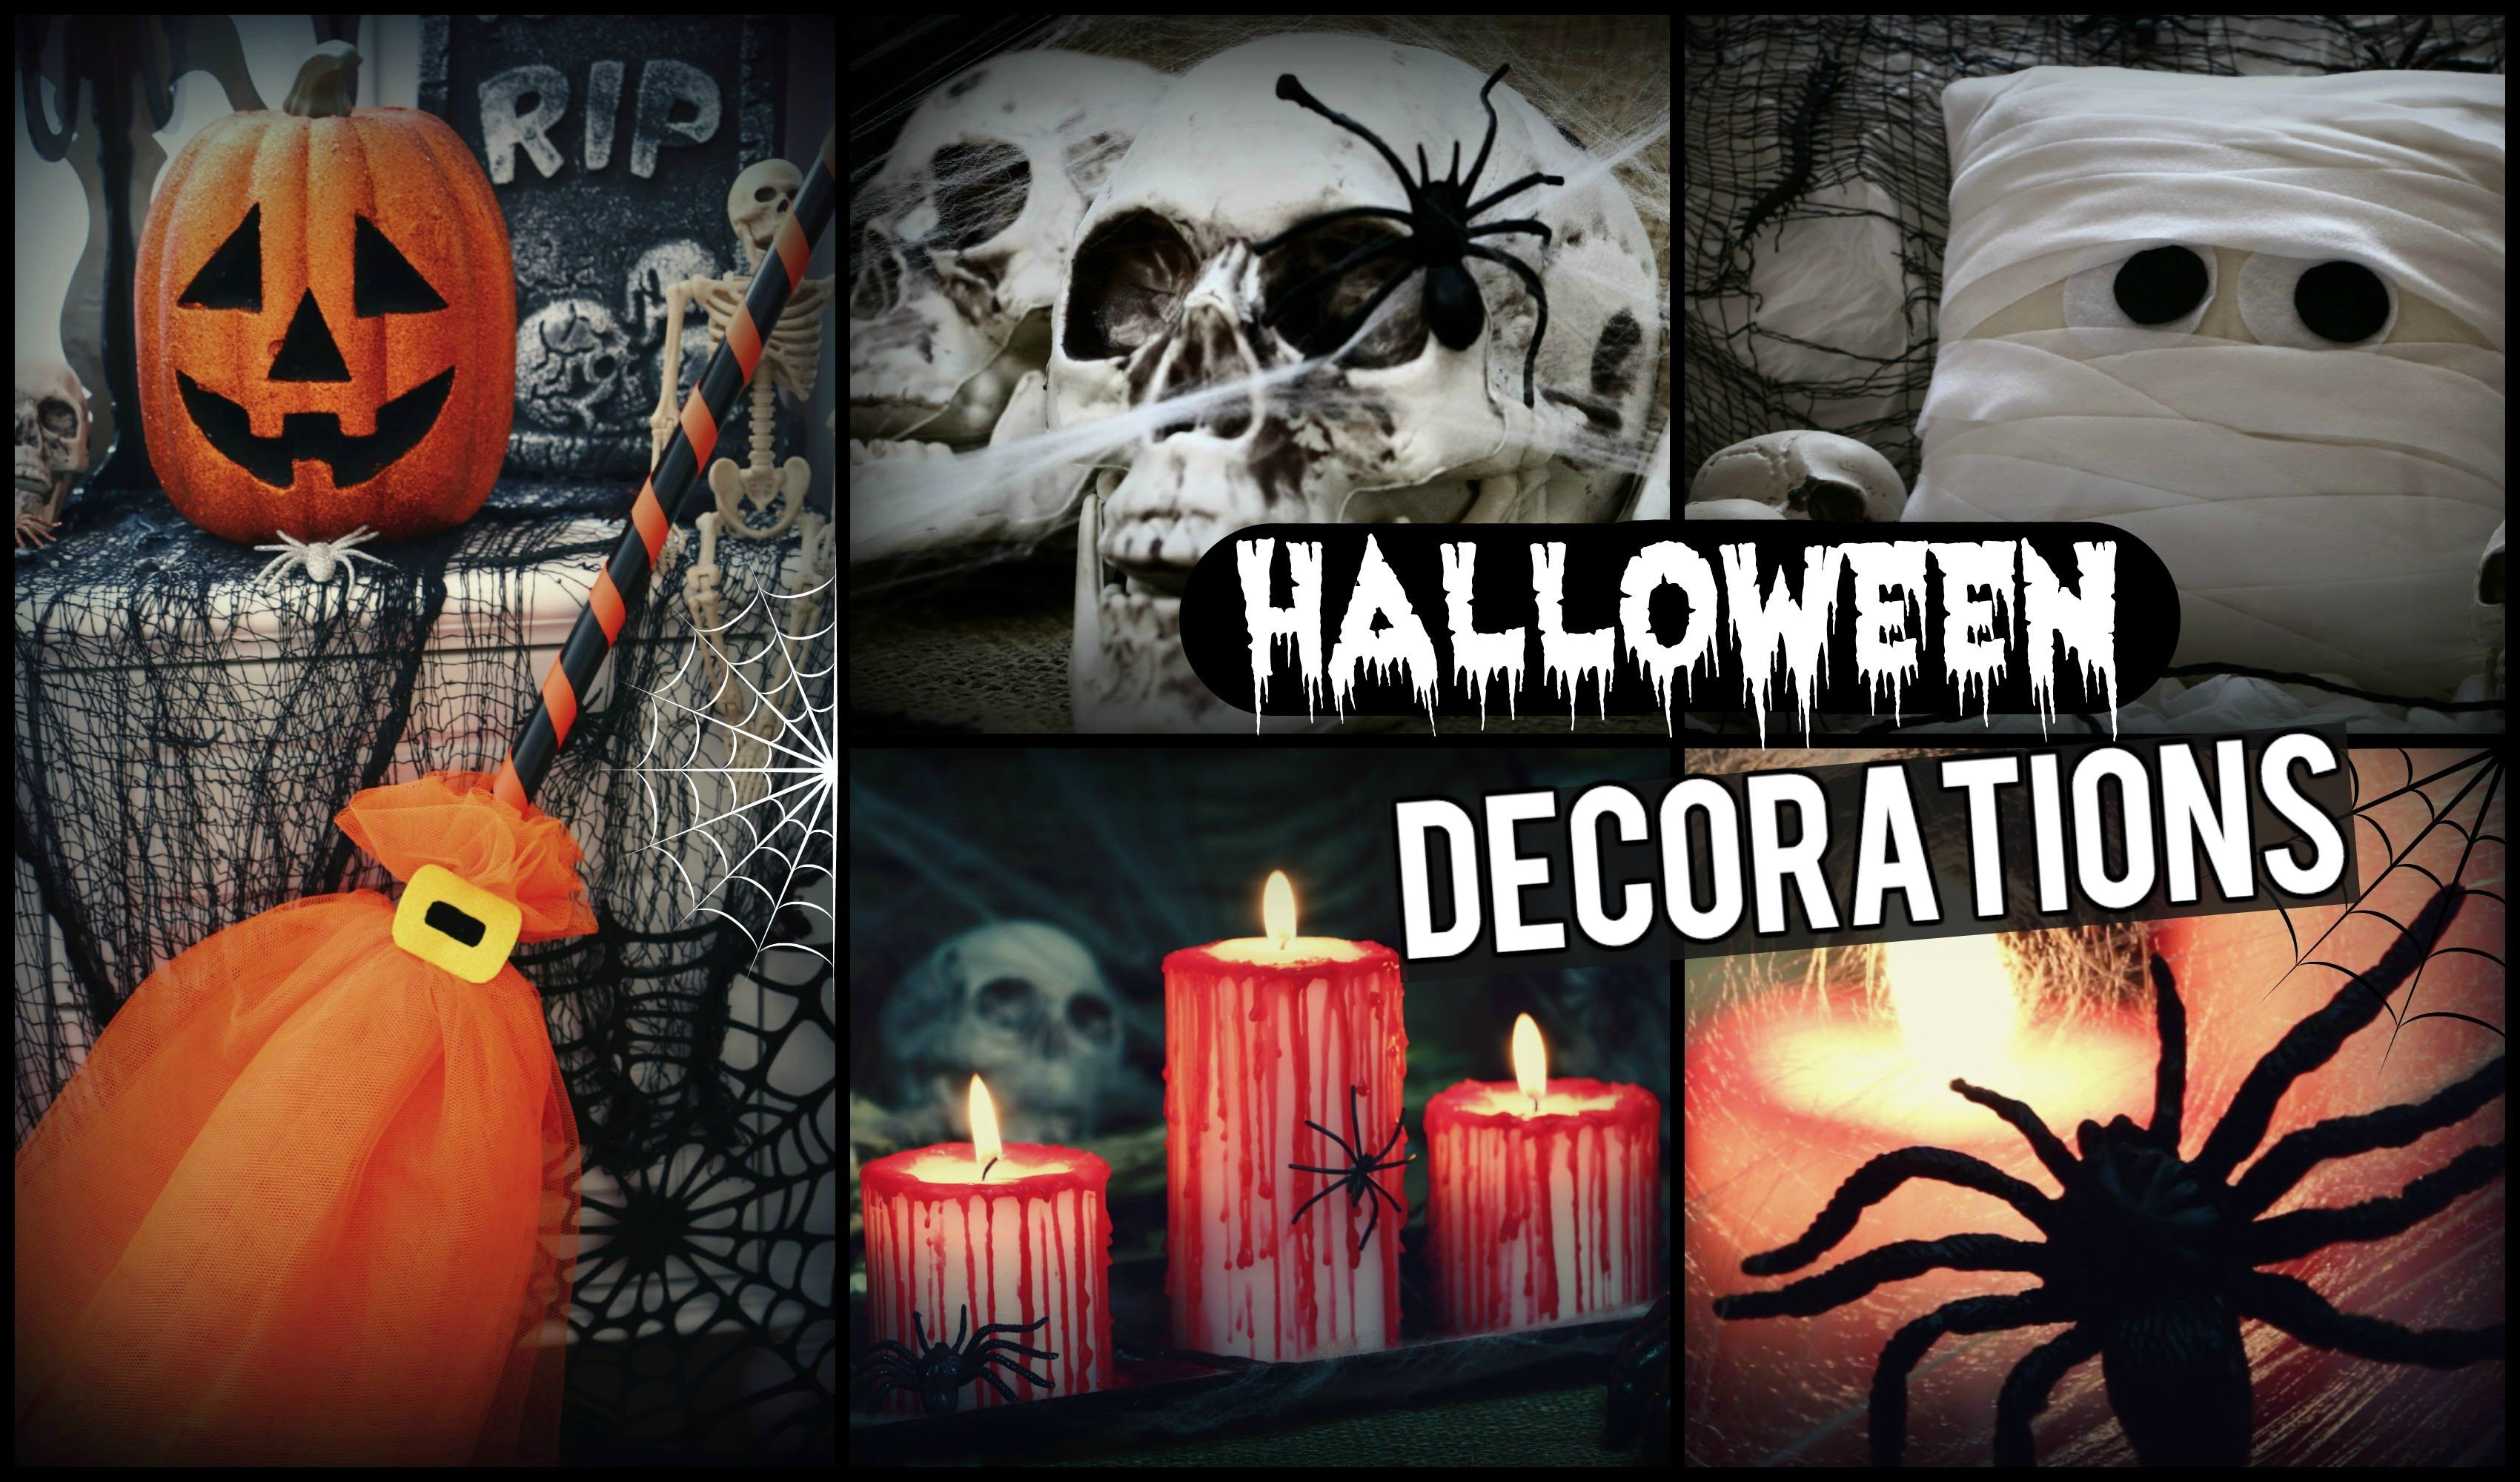 DIY Halloween Decorations! How To Spooky Halloween Room Decor - Spooky Halloween Decorations